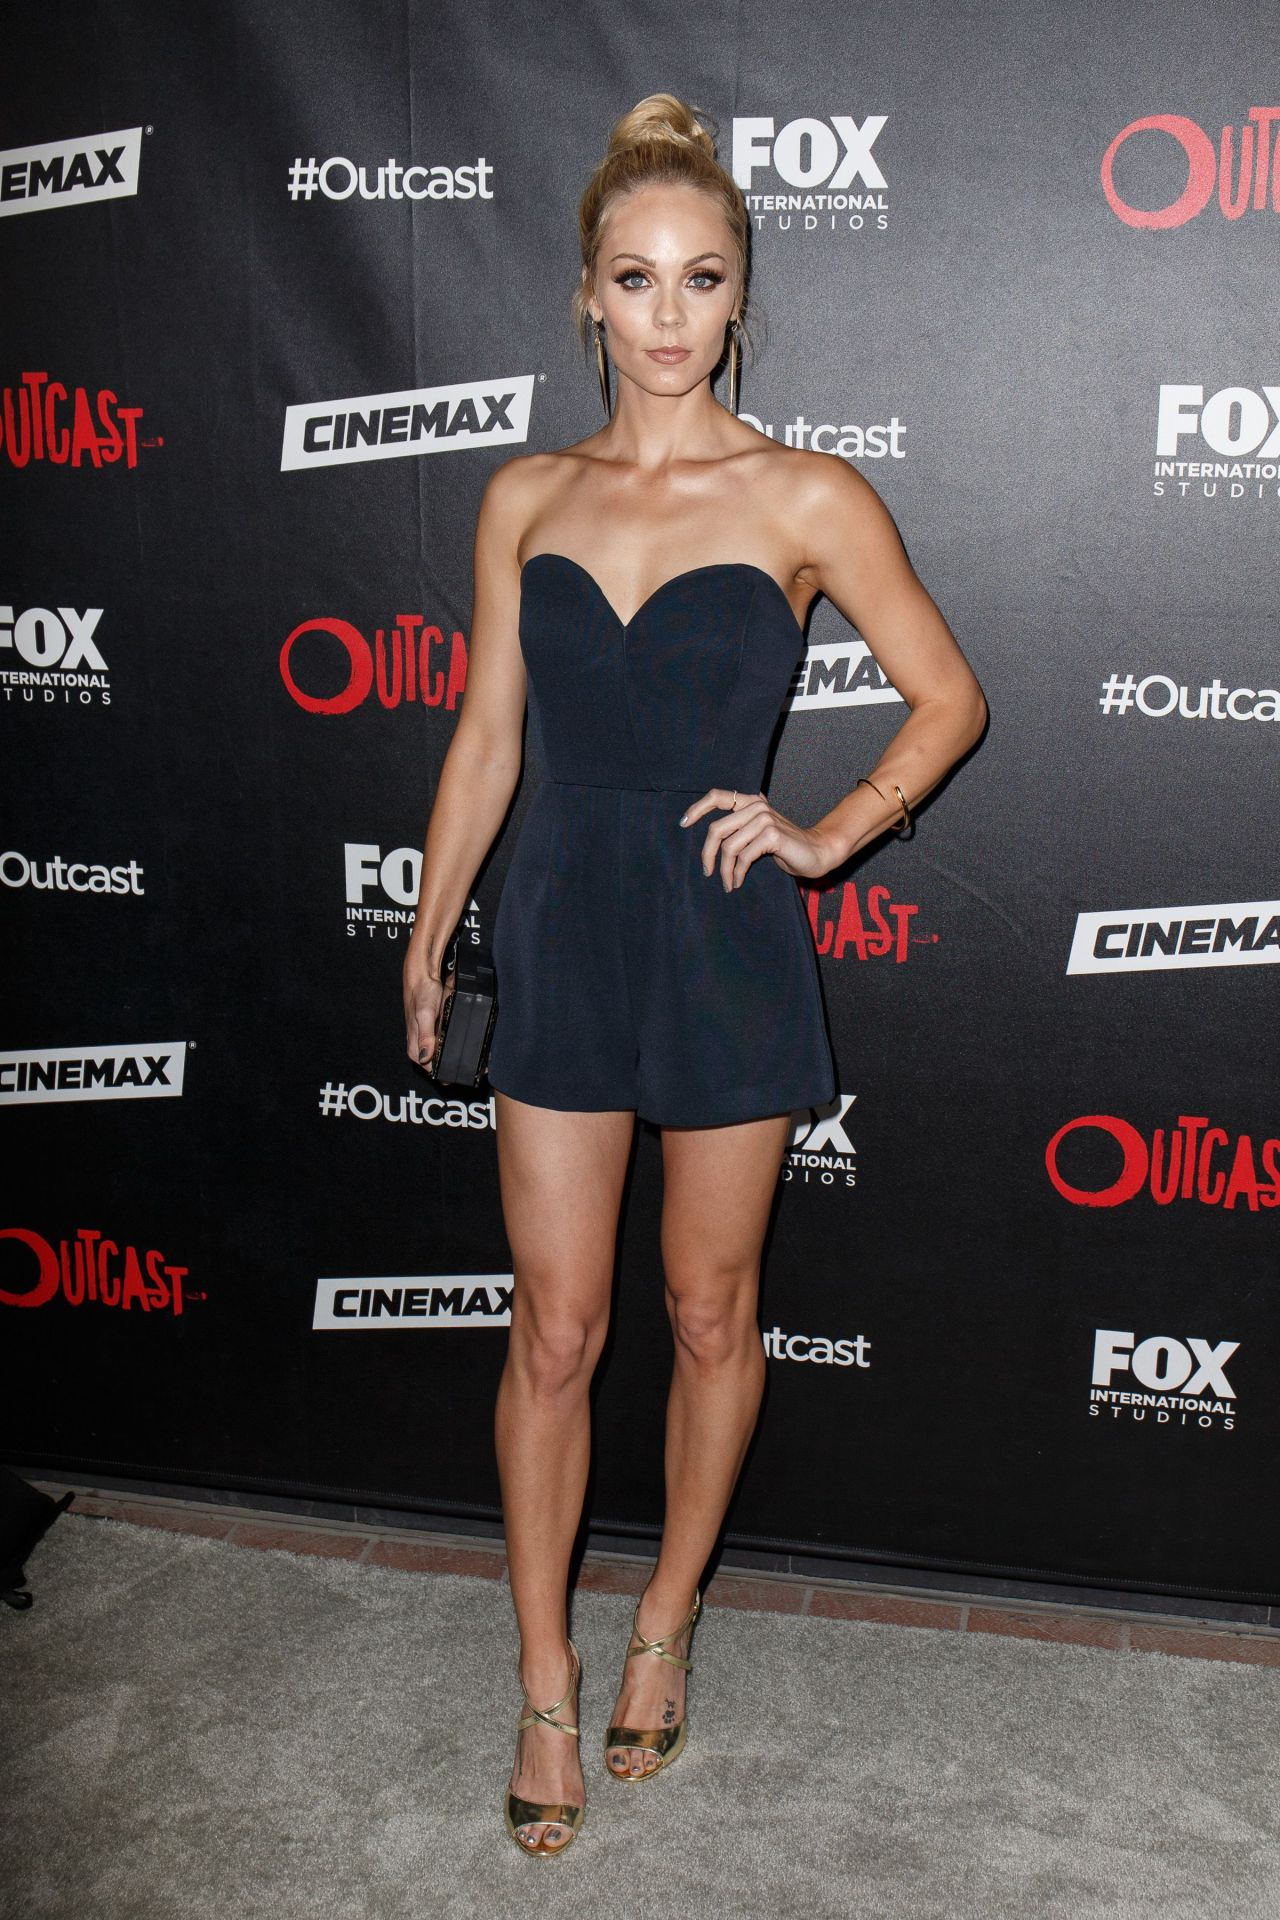 http://www.theplace.ru/archive/laura_vandervoort/img/laura_vandervoort_at_fox_international_studios_outcast_comic_con_party_in_san_diego_july_2015_1.jpg